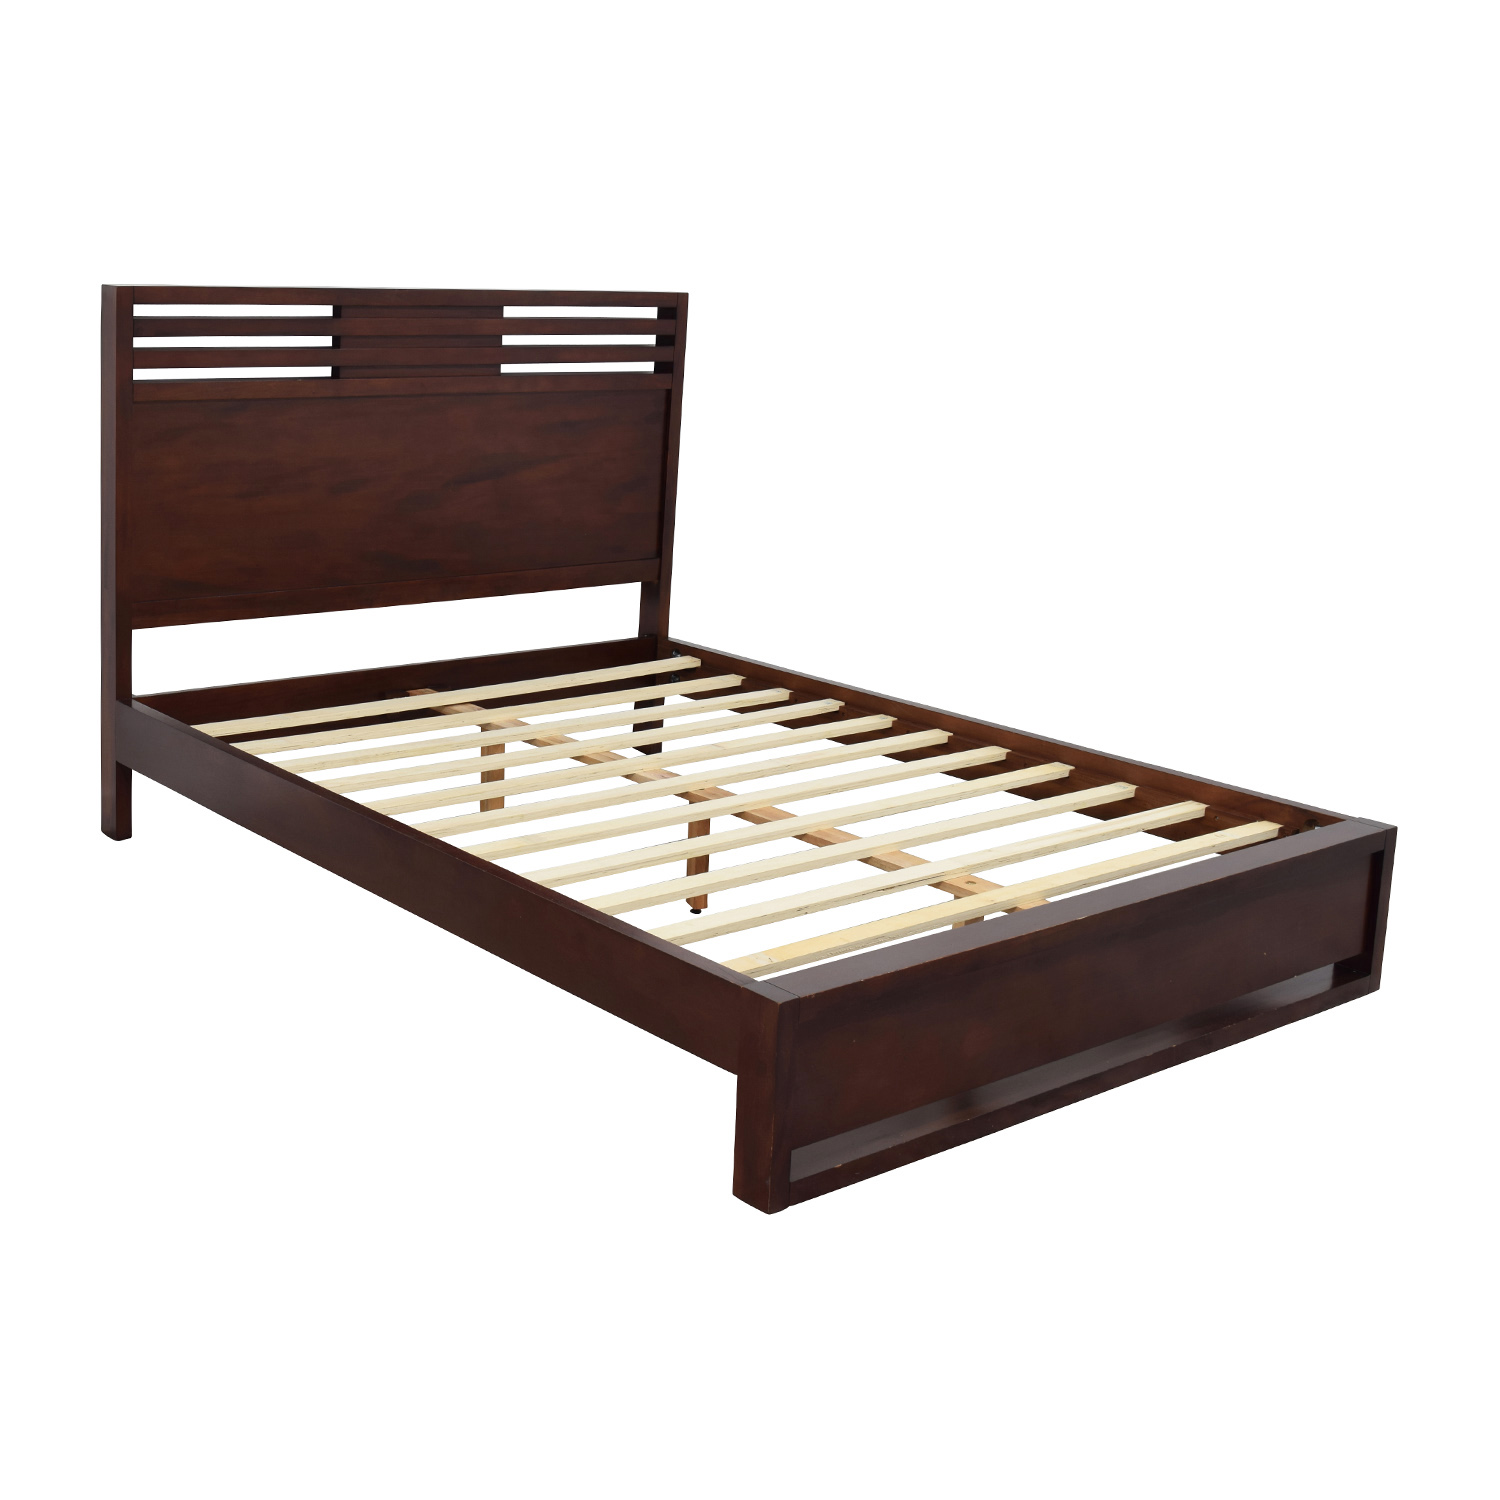 71 off macy 39 s macy 39 s battery park queen bed frame beds for Queen bed frame